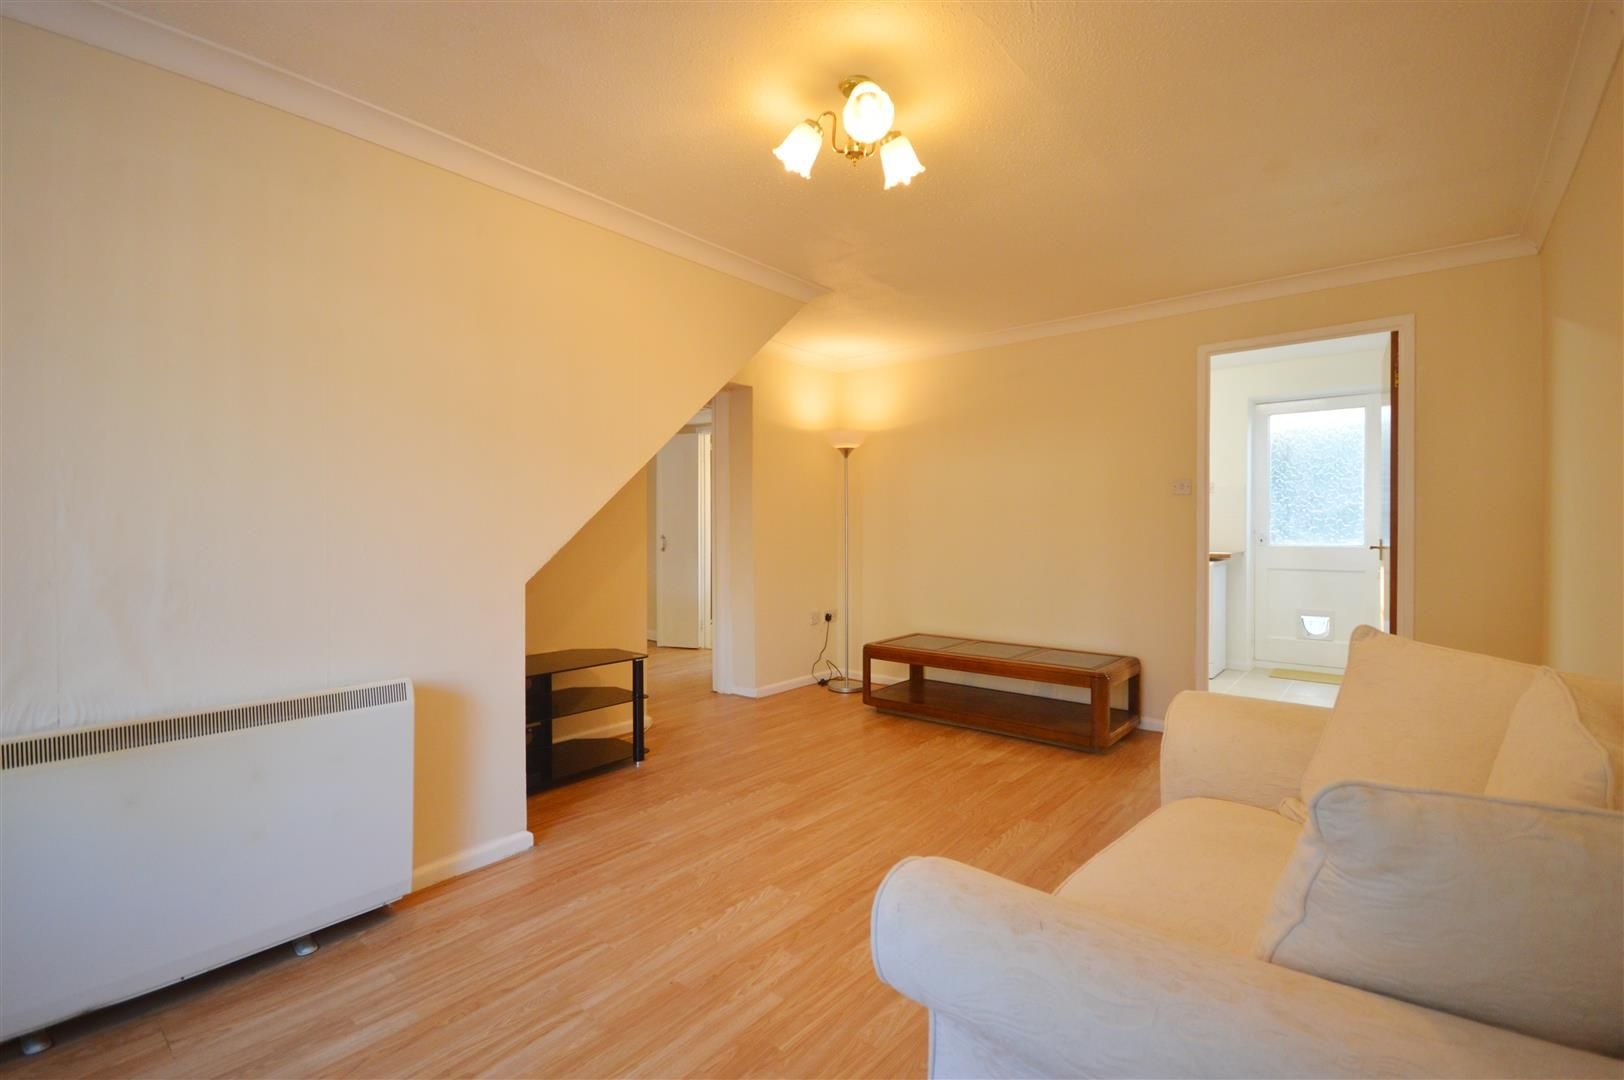 3 bed semi-detached to rent in Leominster  - Property Image 3